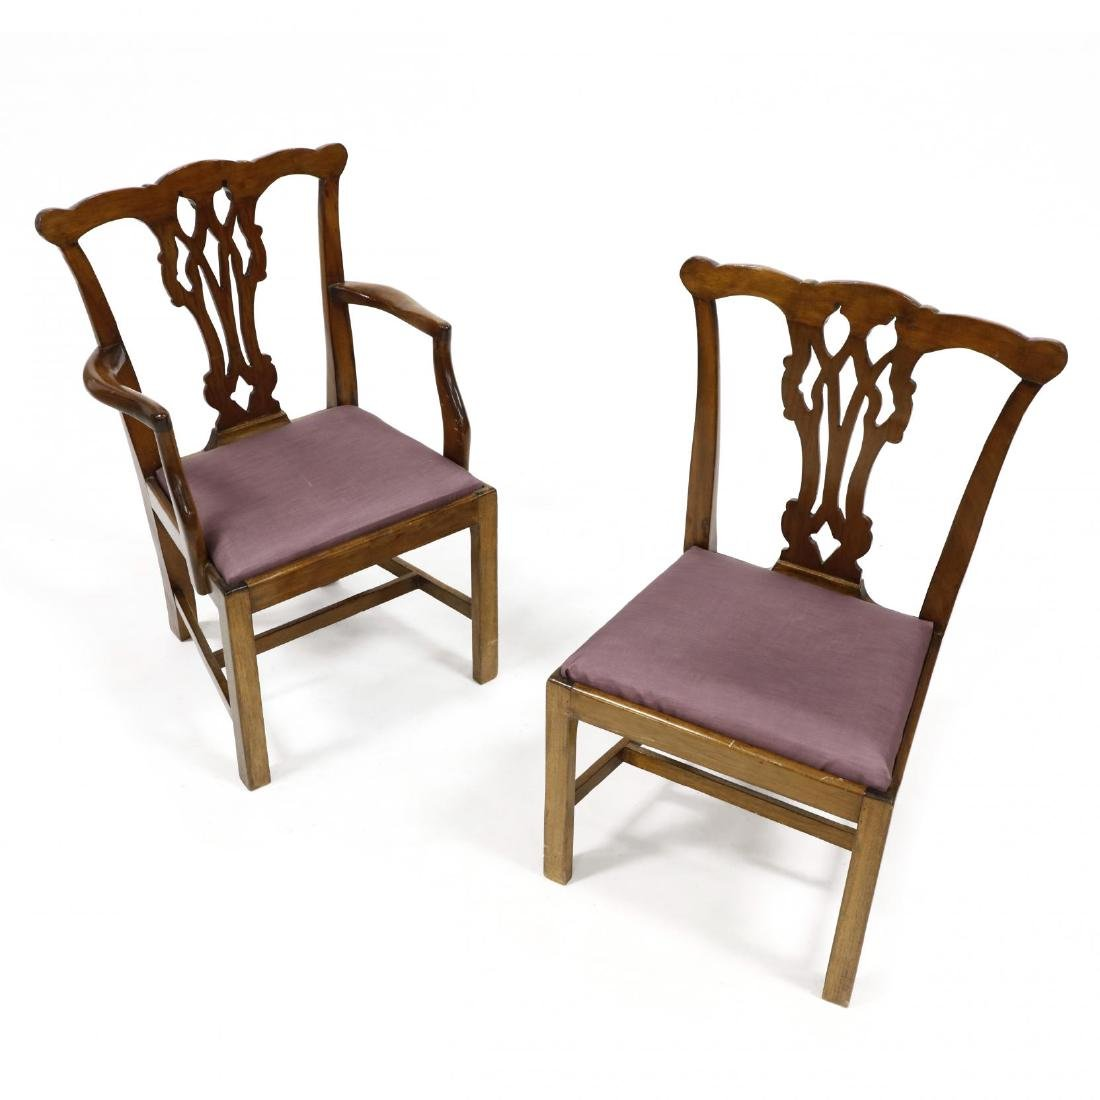 Pair of Chippendale Style Mahogany Child's Chairs - 2